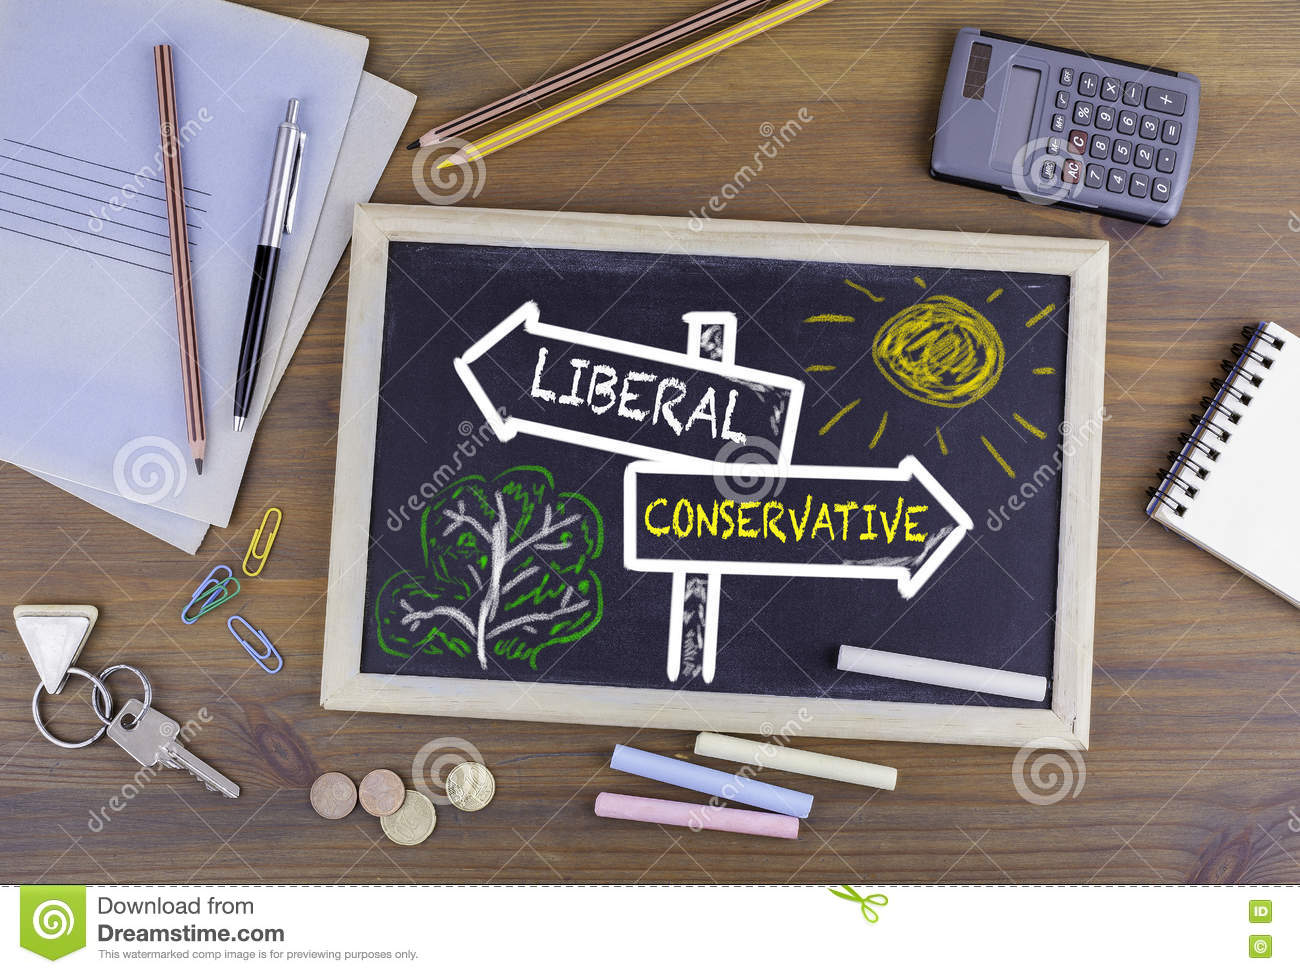 Liberal - Conservative signpost drawn on a blackboard